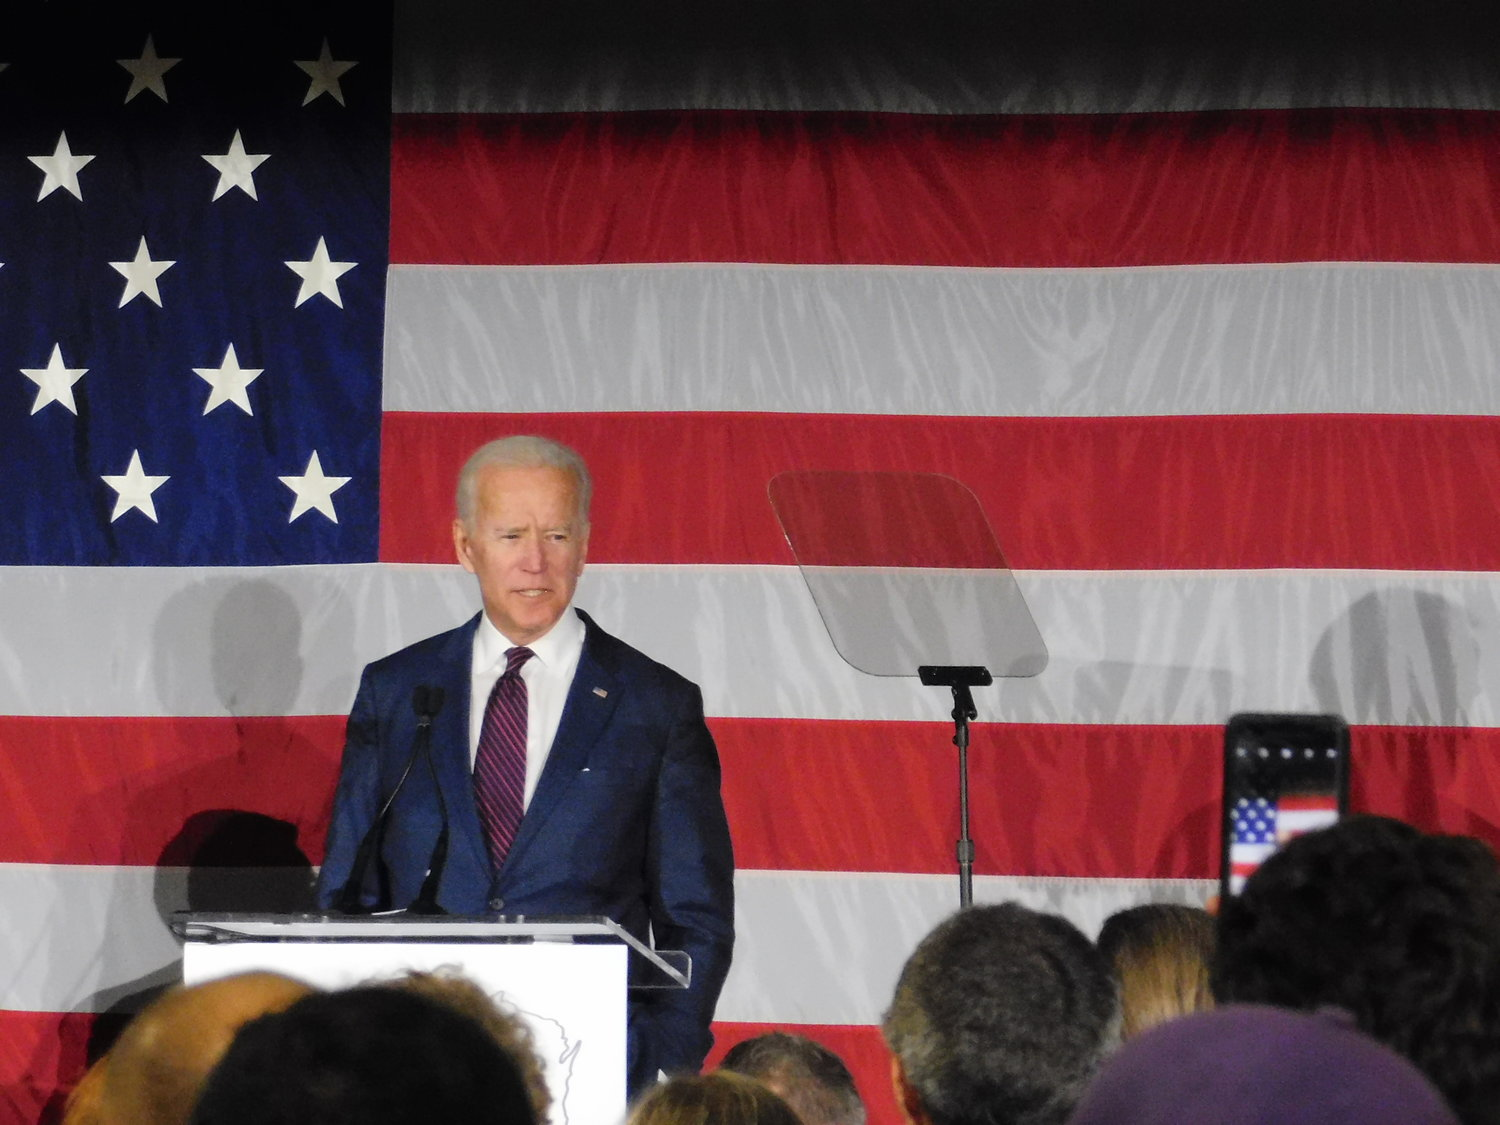 Joe Biden came to Milwaukee to show his support for Wisconsin's democrats. (Picture by Nyesha Stone)